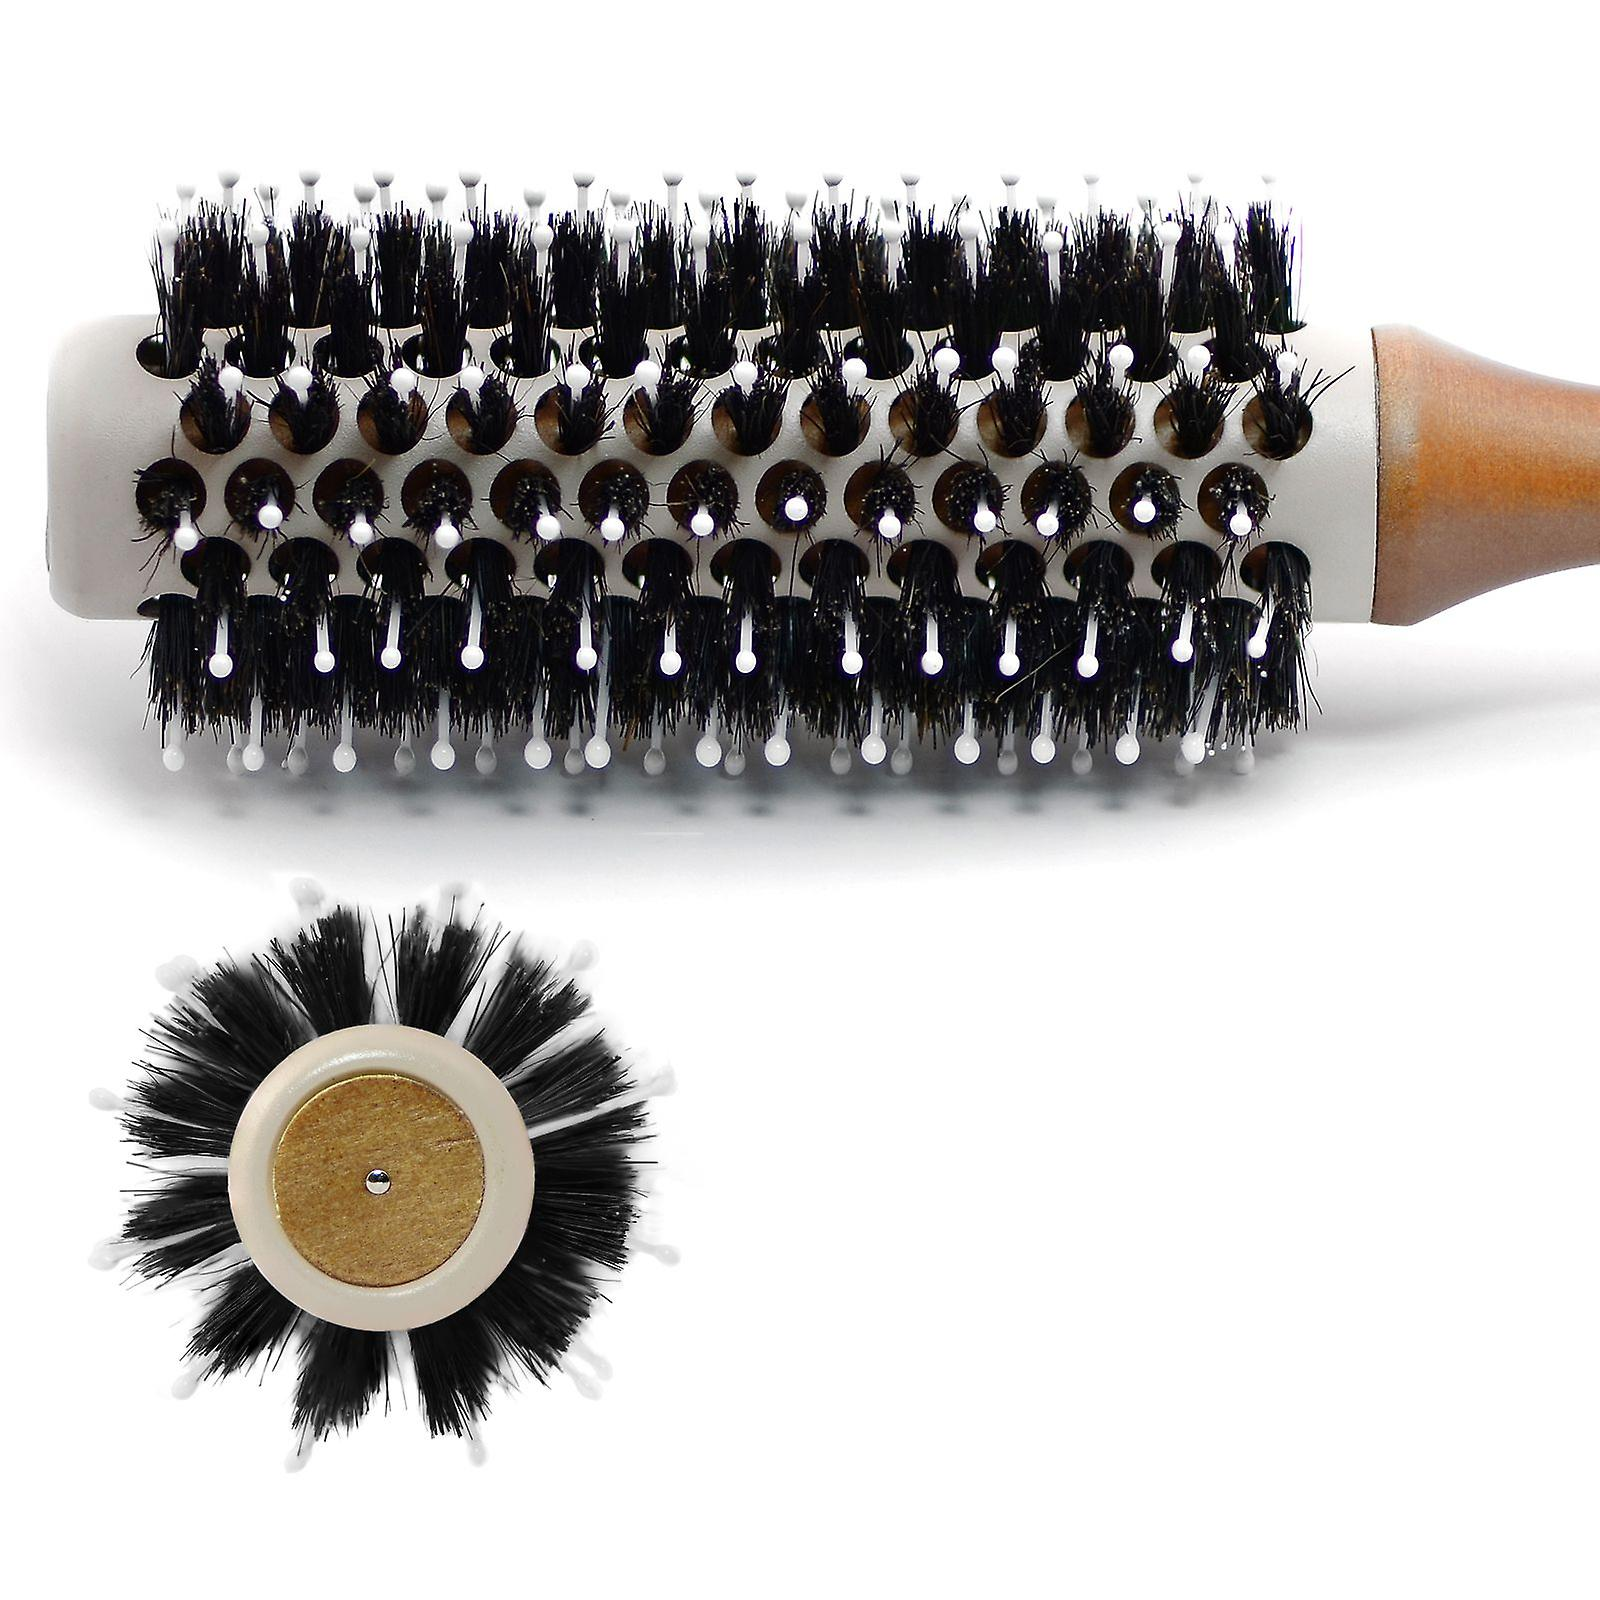 Radial ceramic hair brush with boar bristles 9360